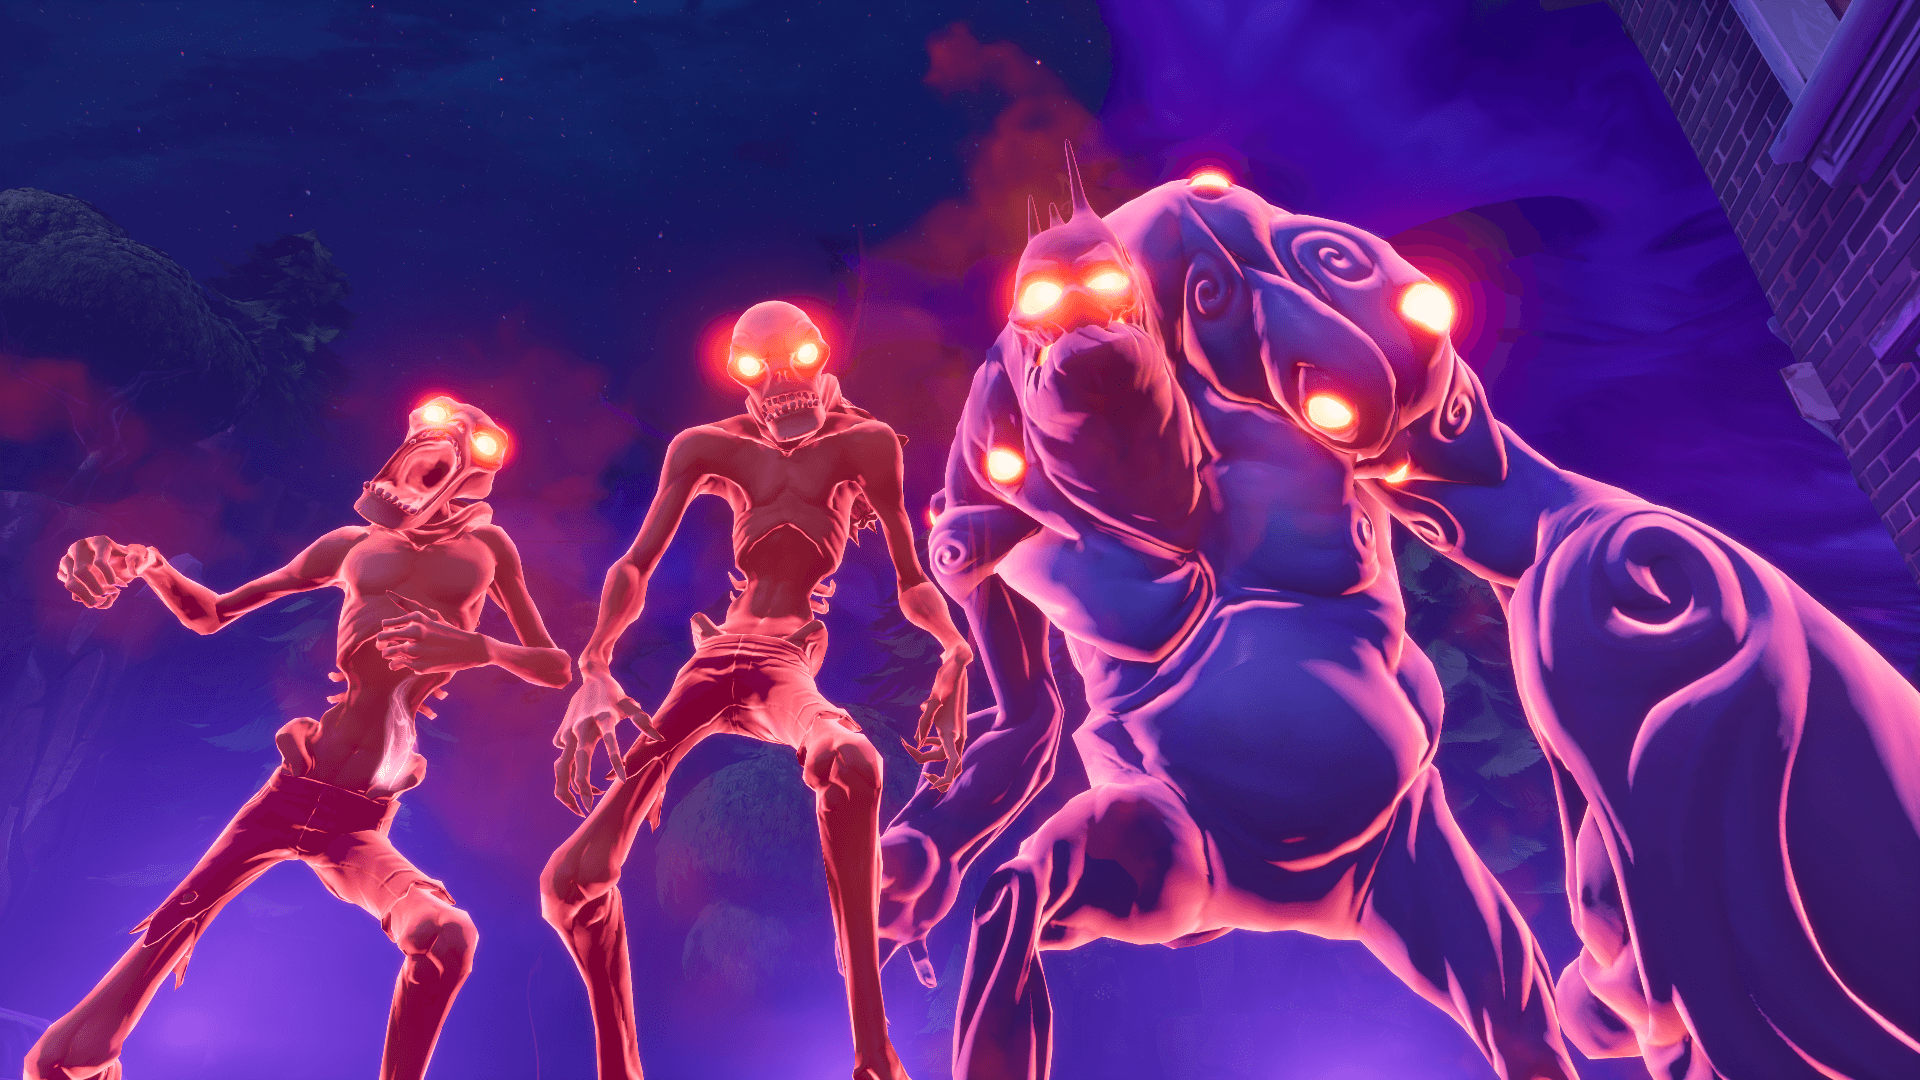 Fortnite Season 3 Wallpapers  Wallpaper Cave